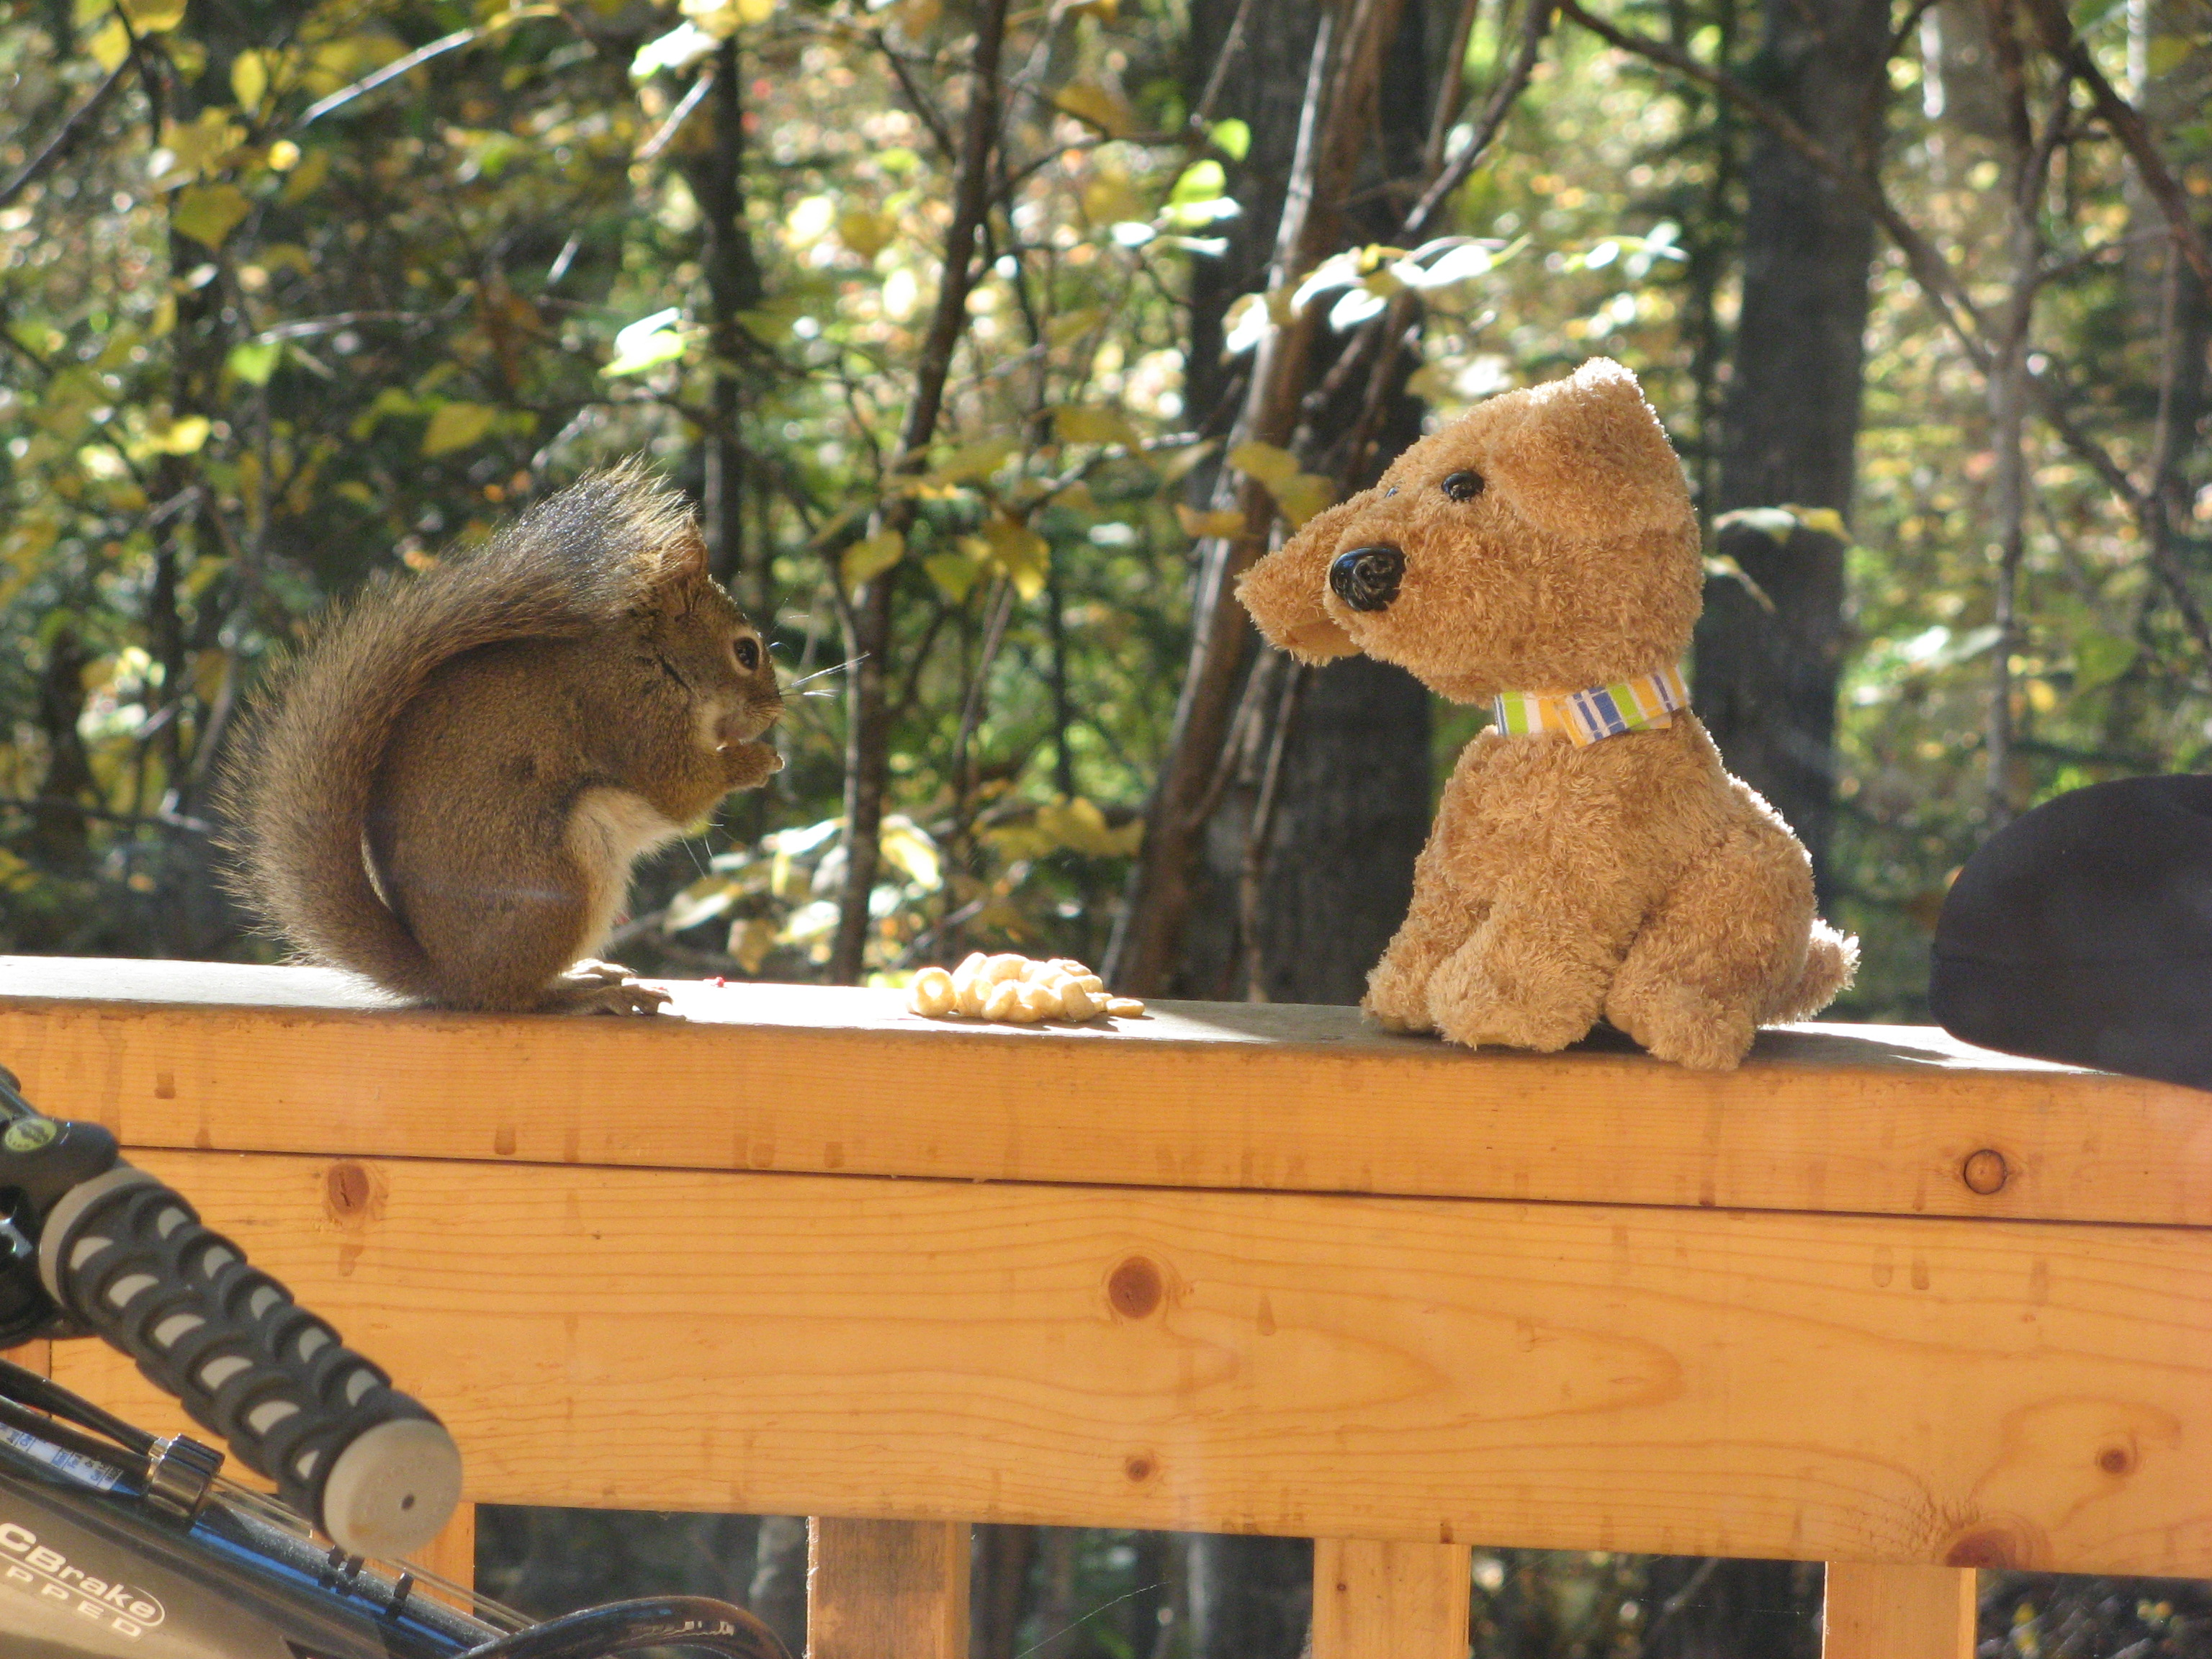 Talkeetna - A cabin, a man, a squirrel, and a stuffed animal.